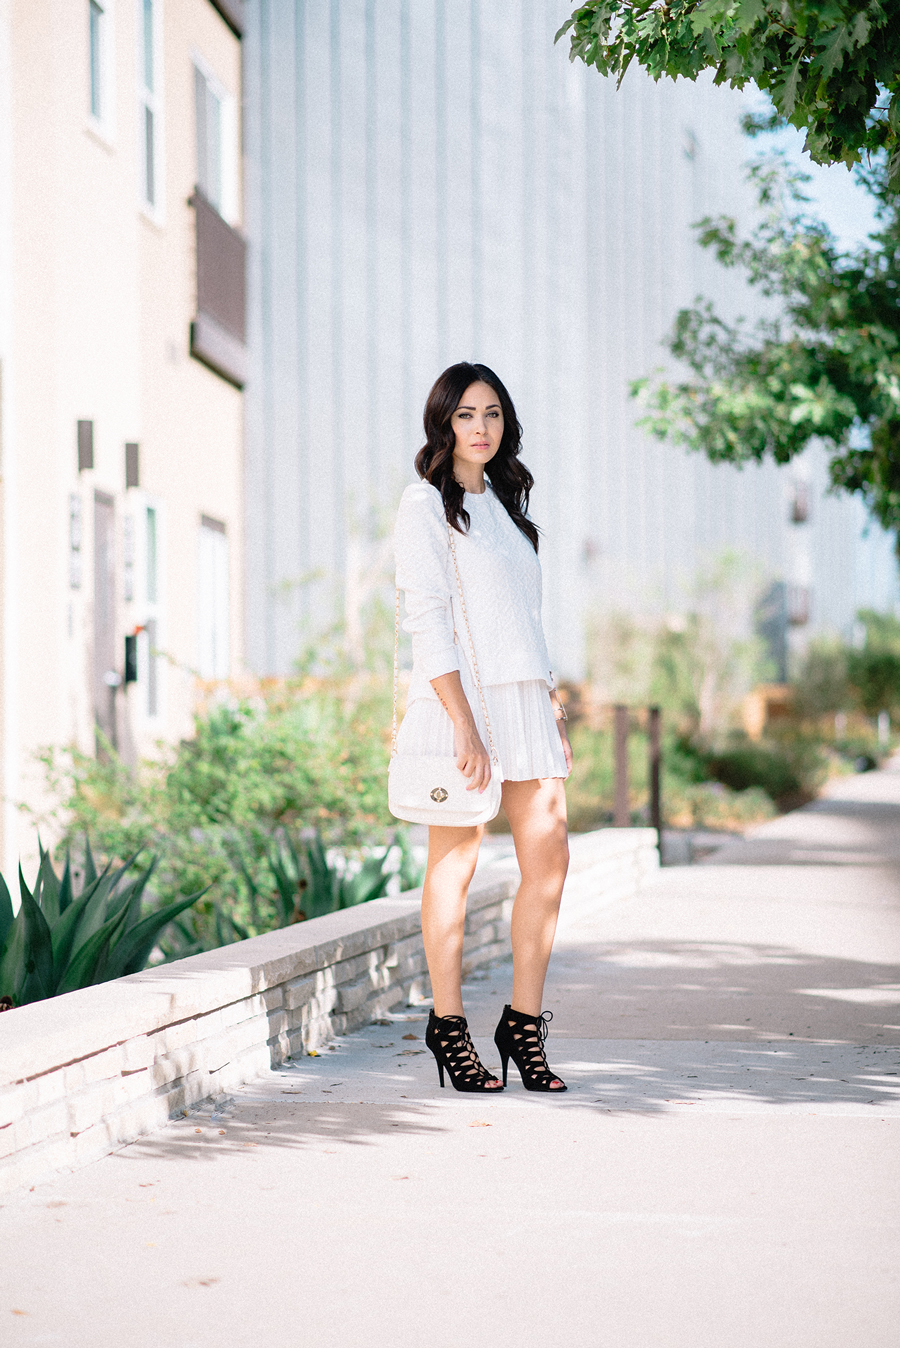 FIXIN-TO-THRILL-CARLOS-BARRON-PHOTOGRAPHY-FALL-NUDE-OCTOBER-CHIC-ATX-AUSTIN-STYLE-BLOG-BLACK-WHITE-LACE-SANDALS-TRENDS-FW15-TRENDY-CHIC-GLAM-FASHION-TEXAS-8